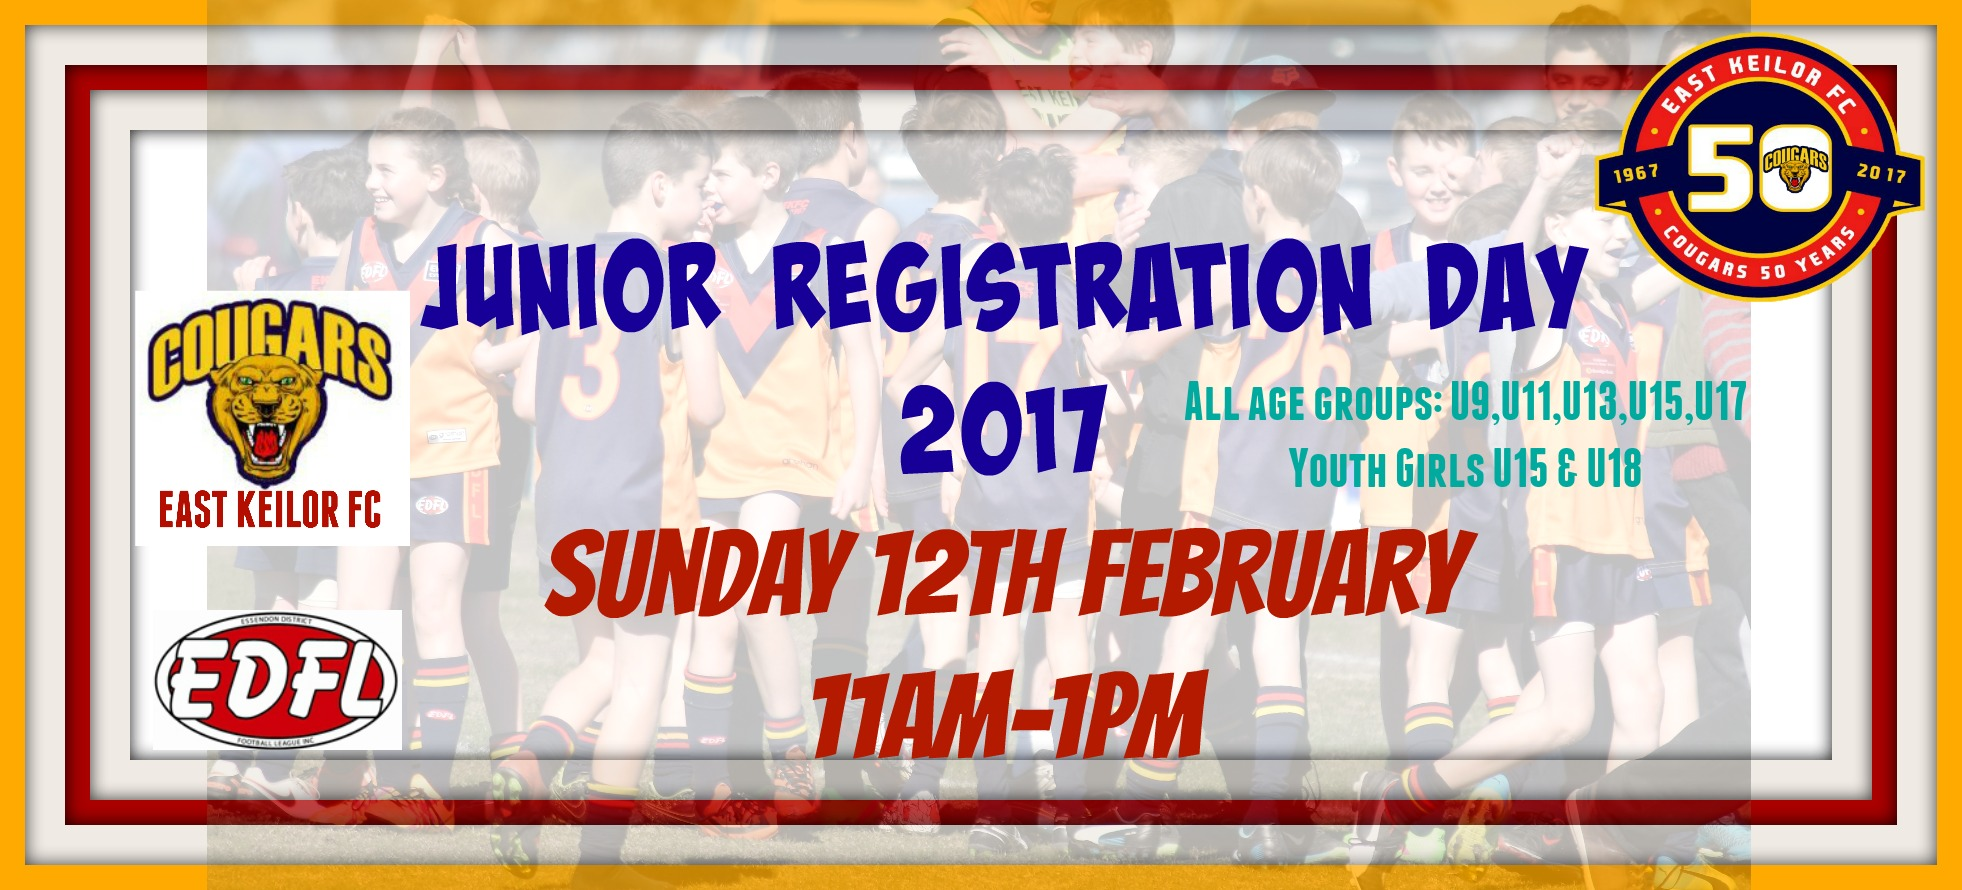 Junior Registration Day 2017